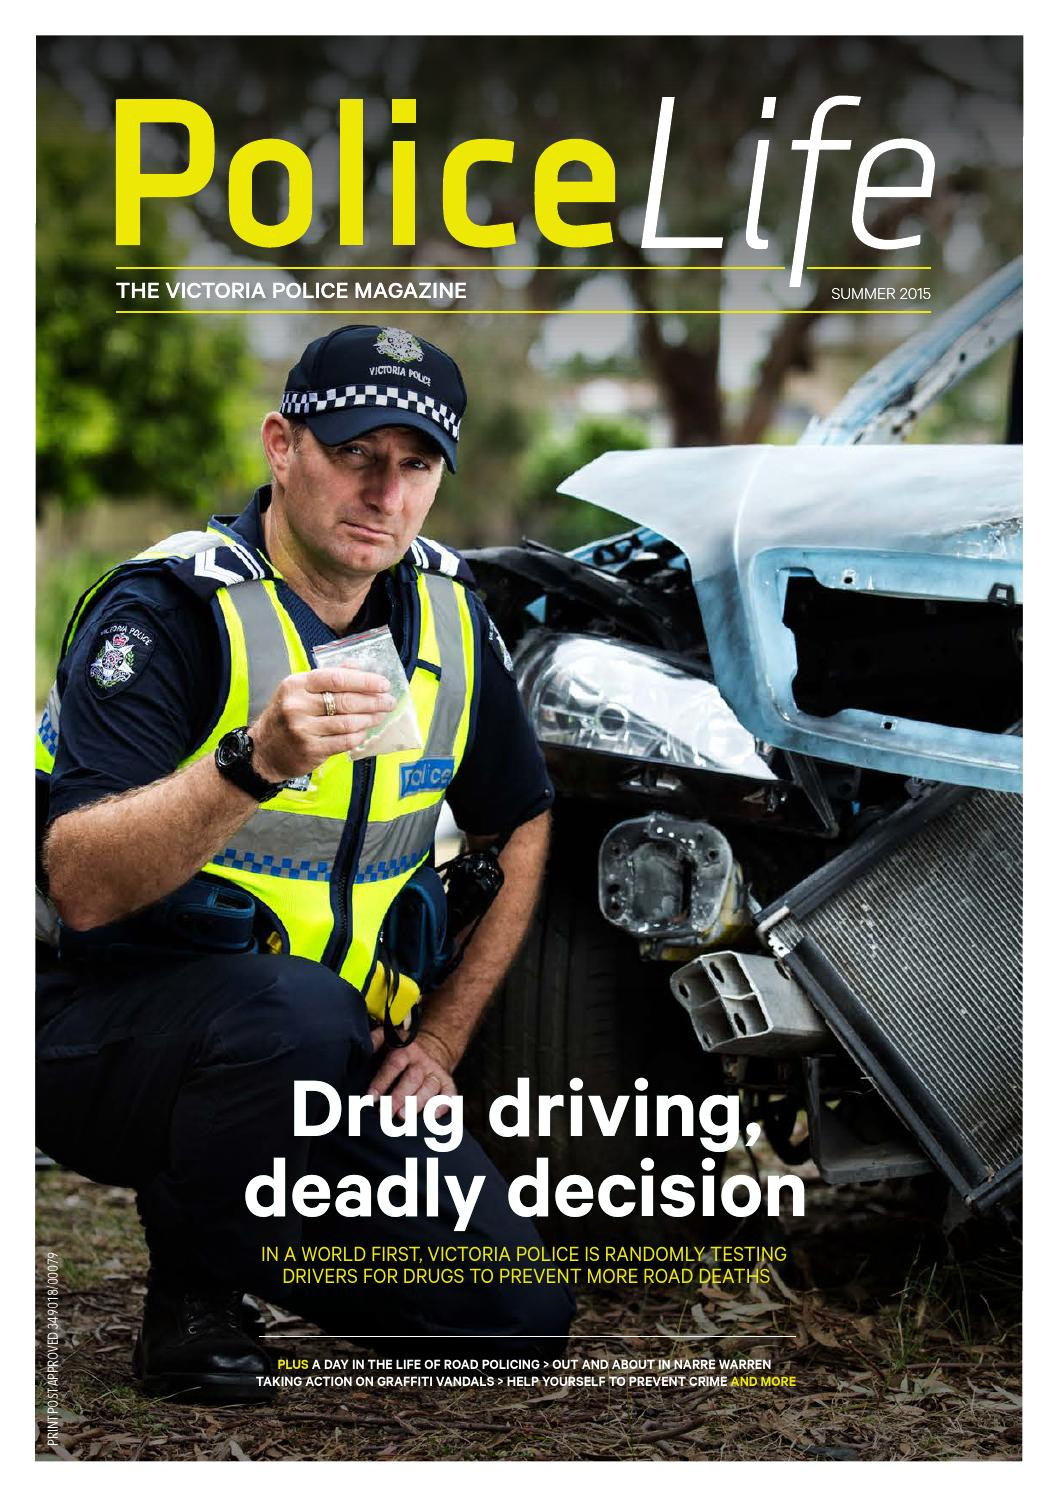 Police Life Summer 2015 by Victoria Police - issuu